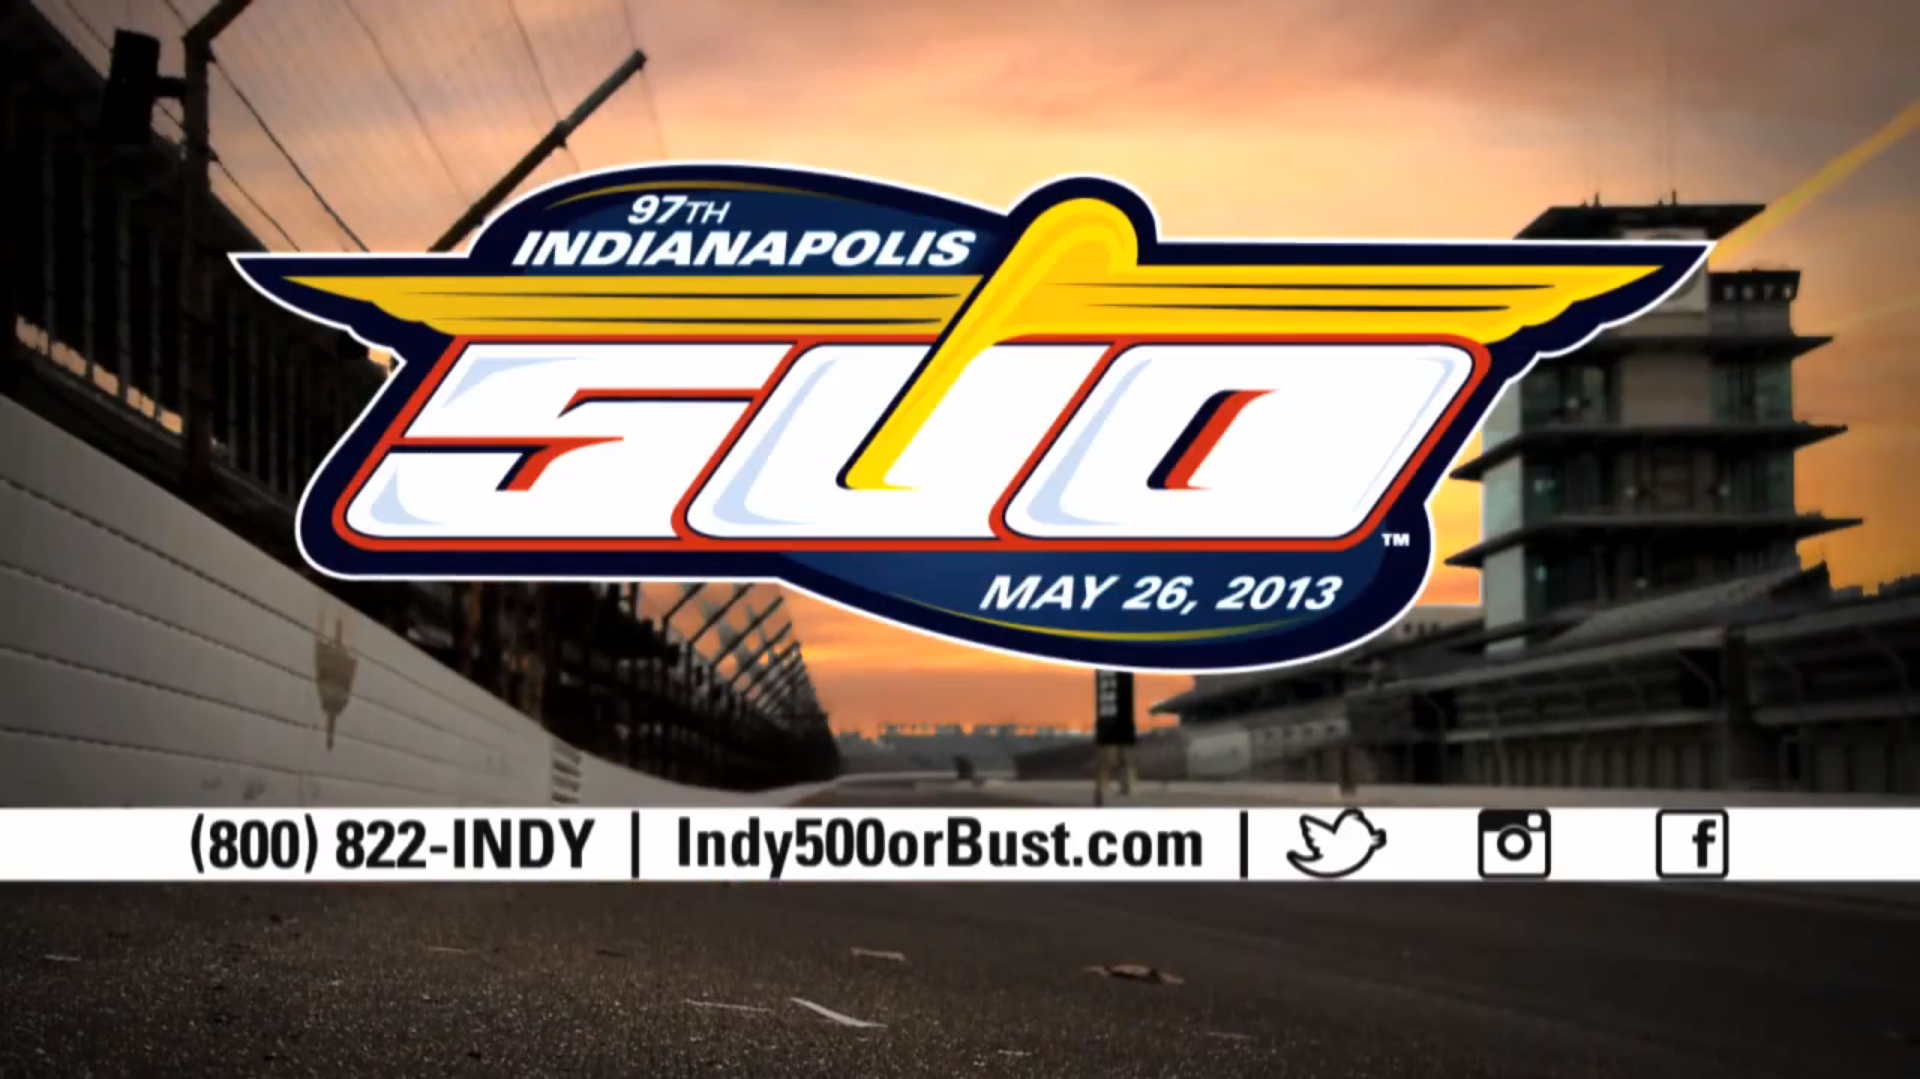 #Indy500orBust Ticket Commercial